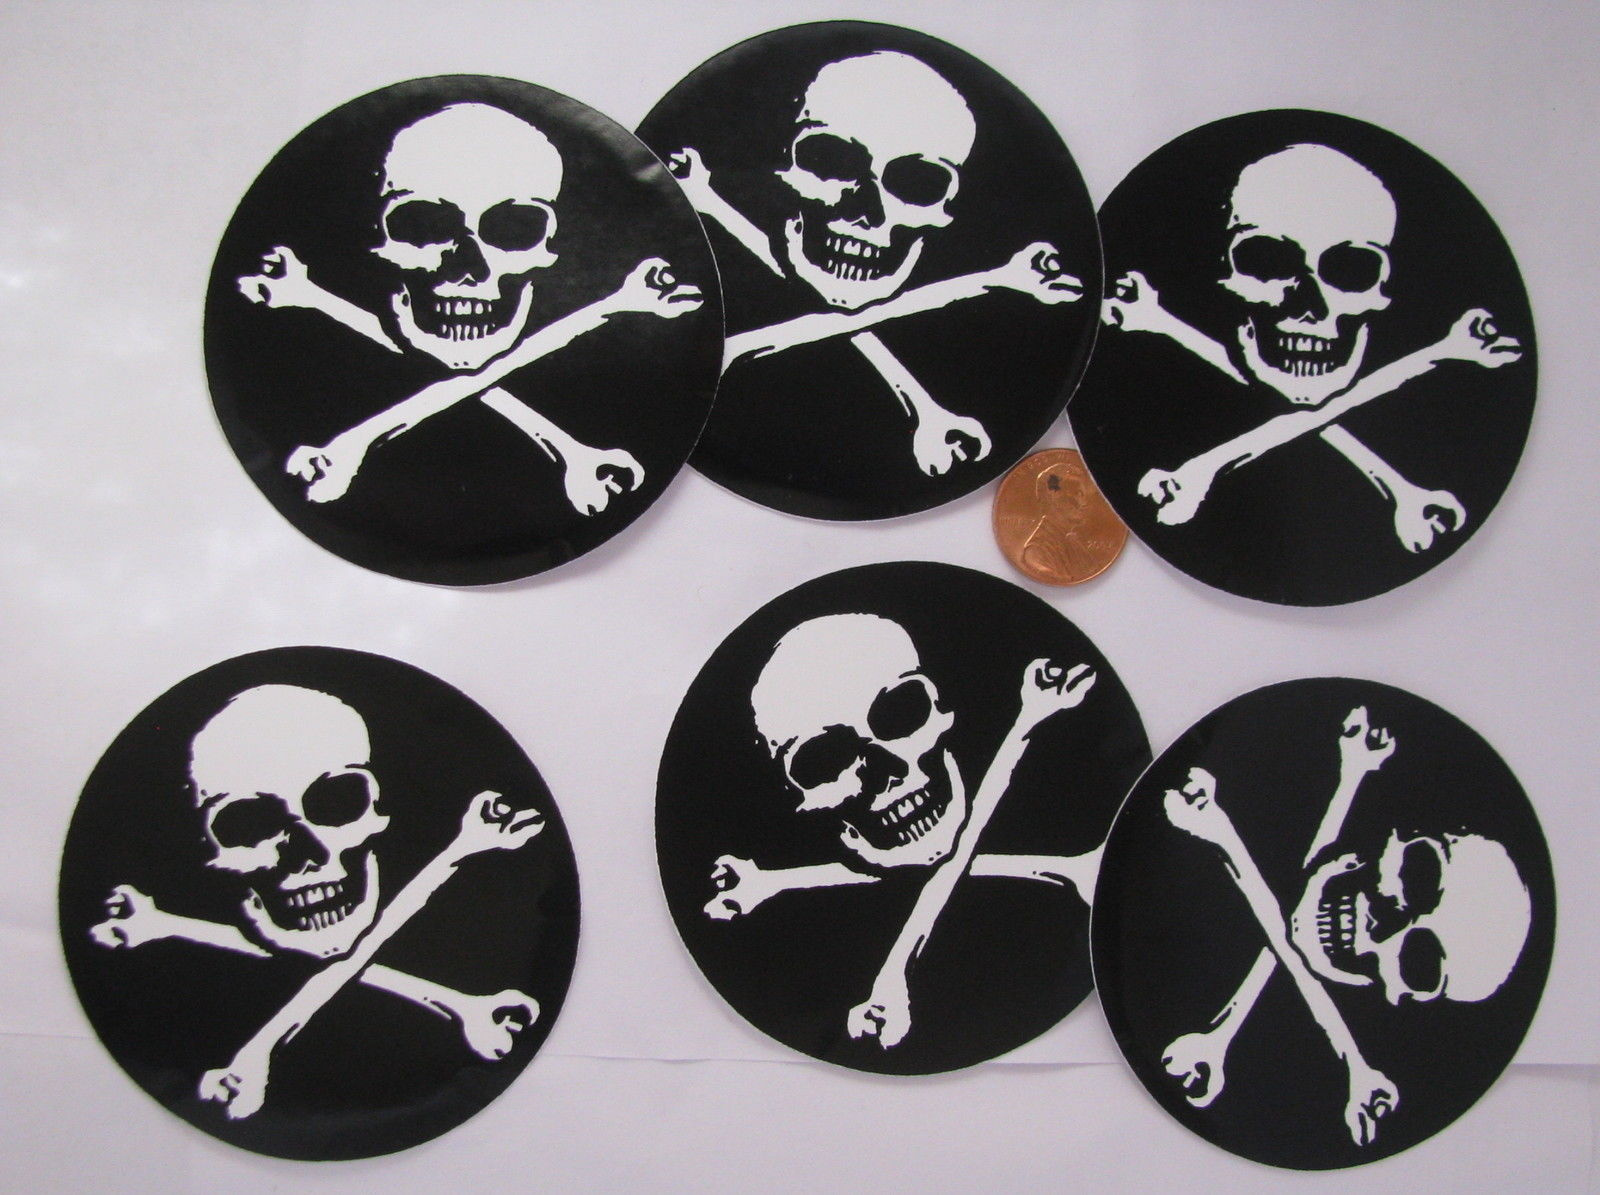 stickers Pirate round skull and Cross bones decal   Stickers Decals 1600x1195